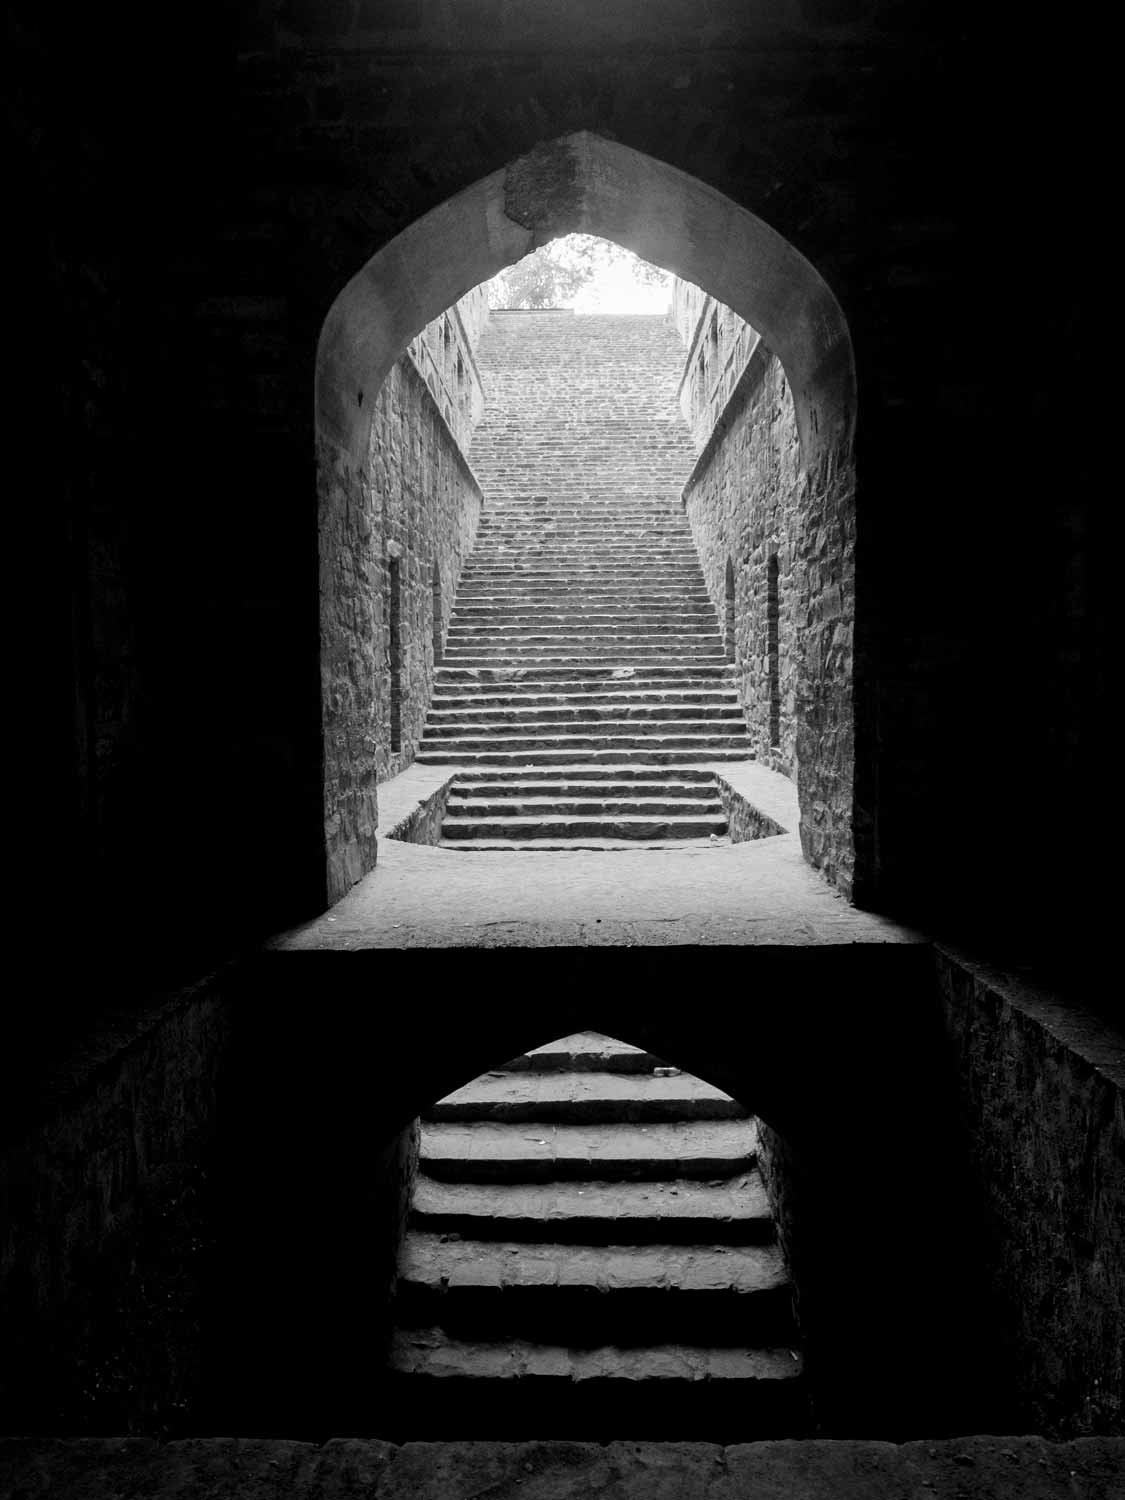 Photo of Agrasen ki Baoli Stepwell, Delhi